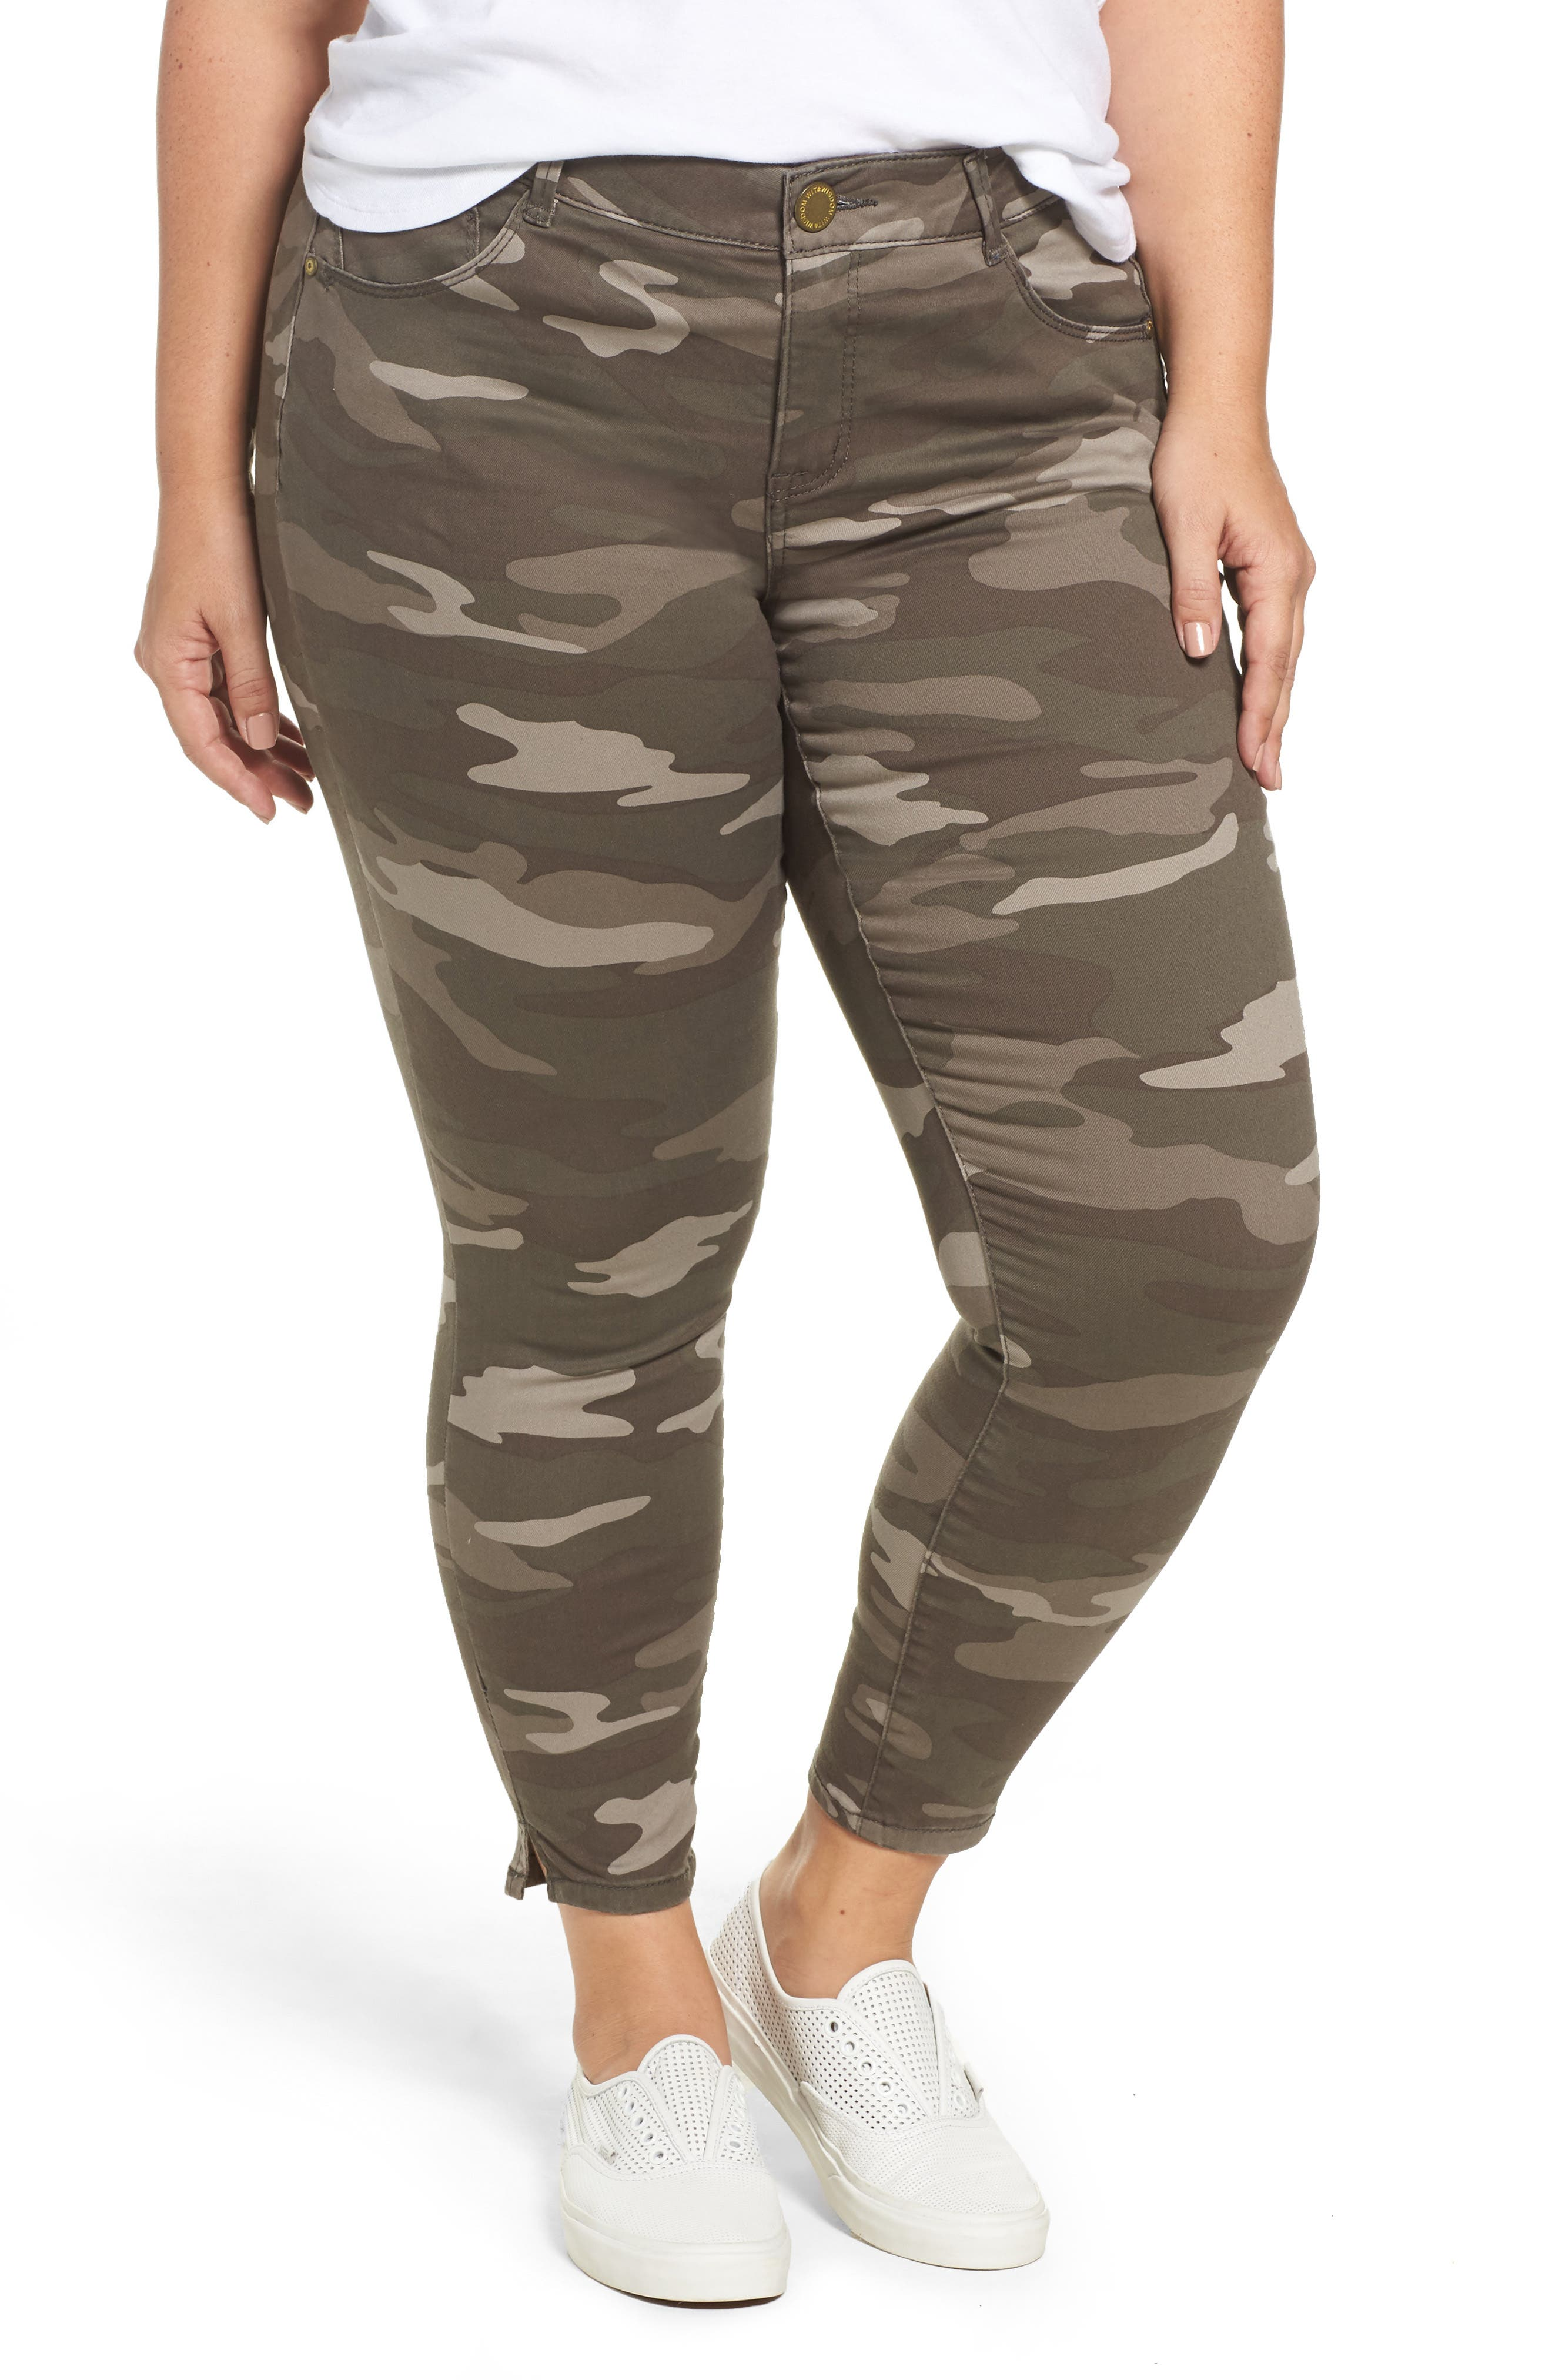 Alternate Image 1 Selected - Wit & Wisdom Ab-solution Camo Skinny Pants (Plus Size) (Nordstrom Exclusive)